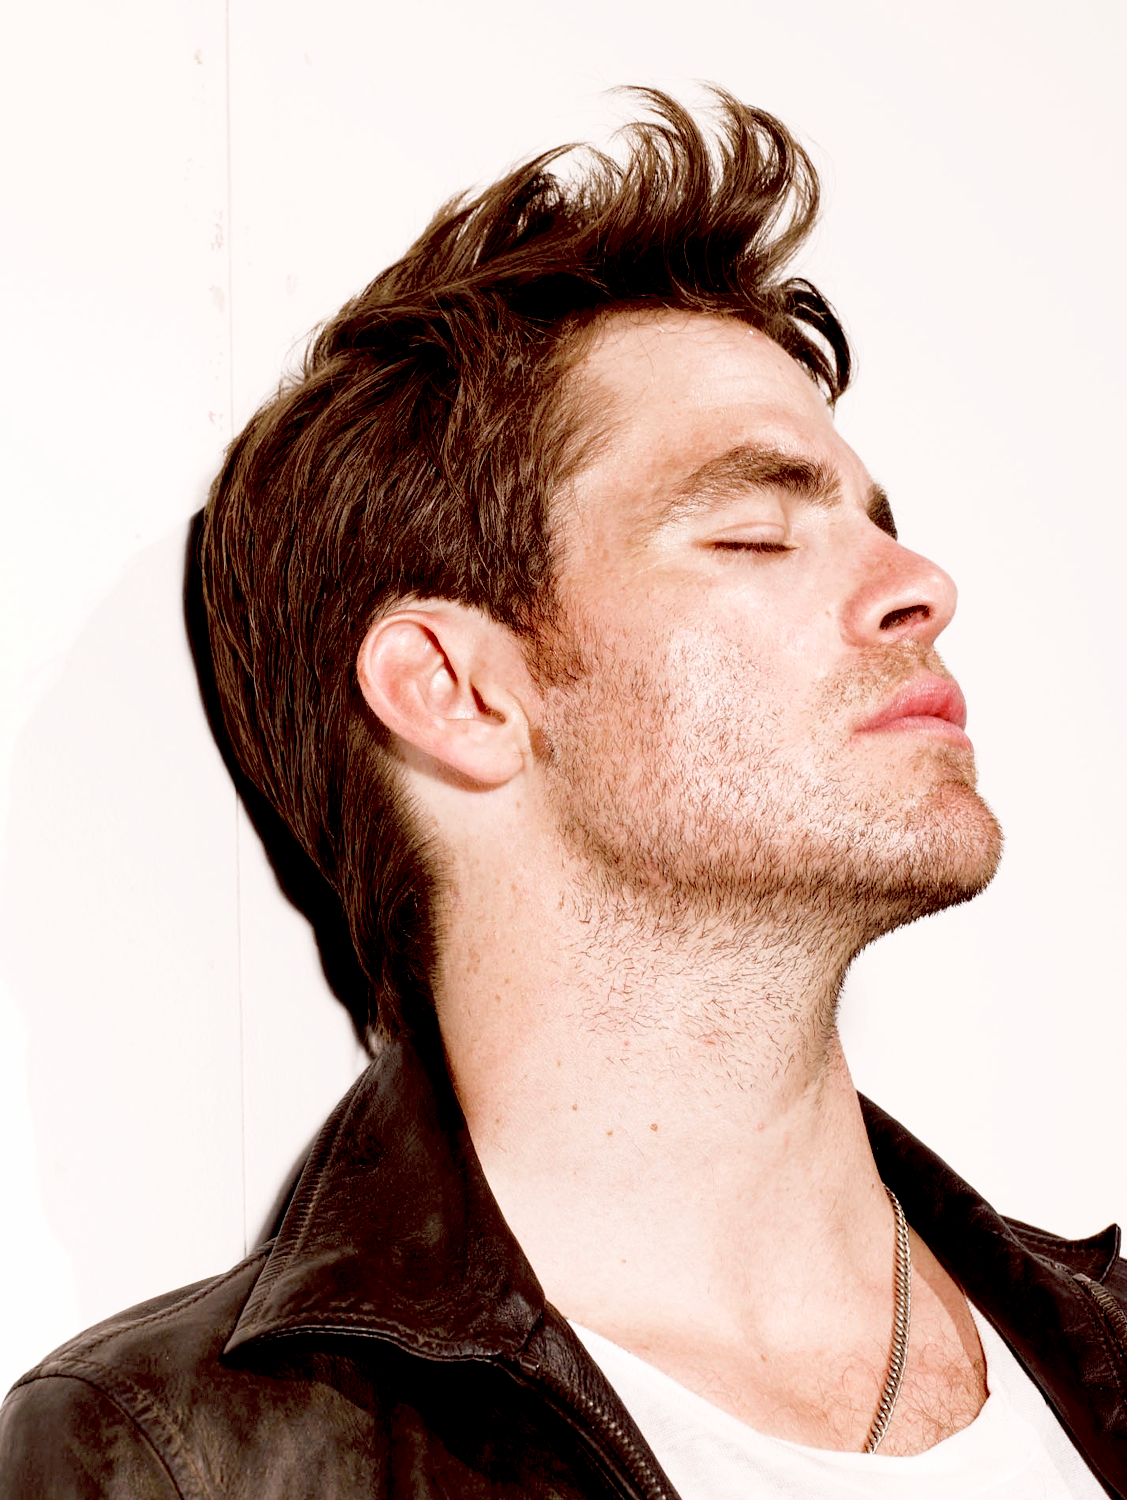 Haircuts for men las vegas pin by mary ackles on chris pine  pinterest